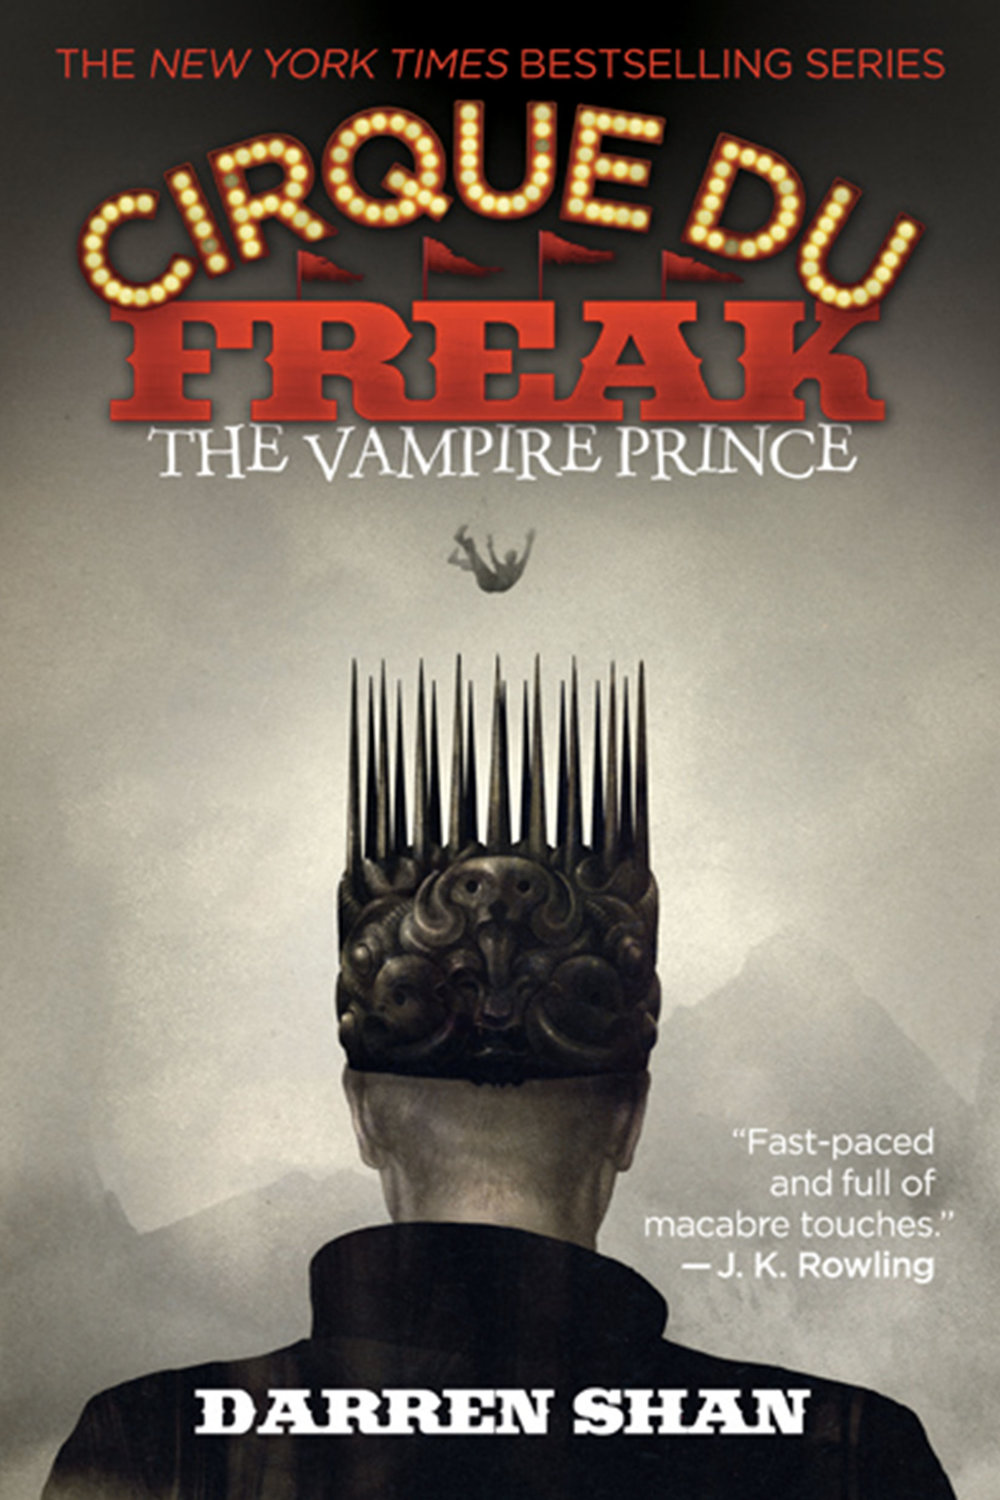 Cirque Du Freak: The Vampire Prince by Darren Shan Designed by Ben Mautner for Little, Brown Illustrated by Sam Weber